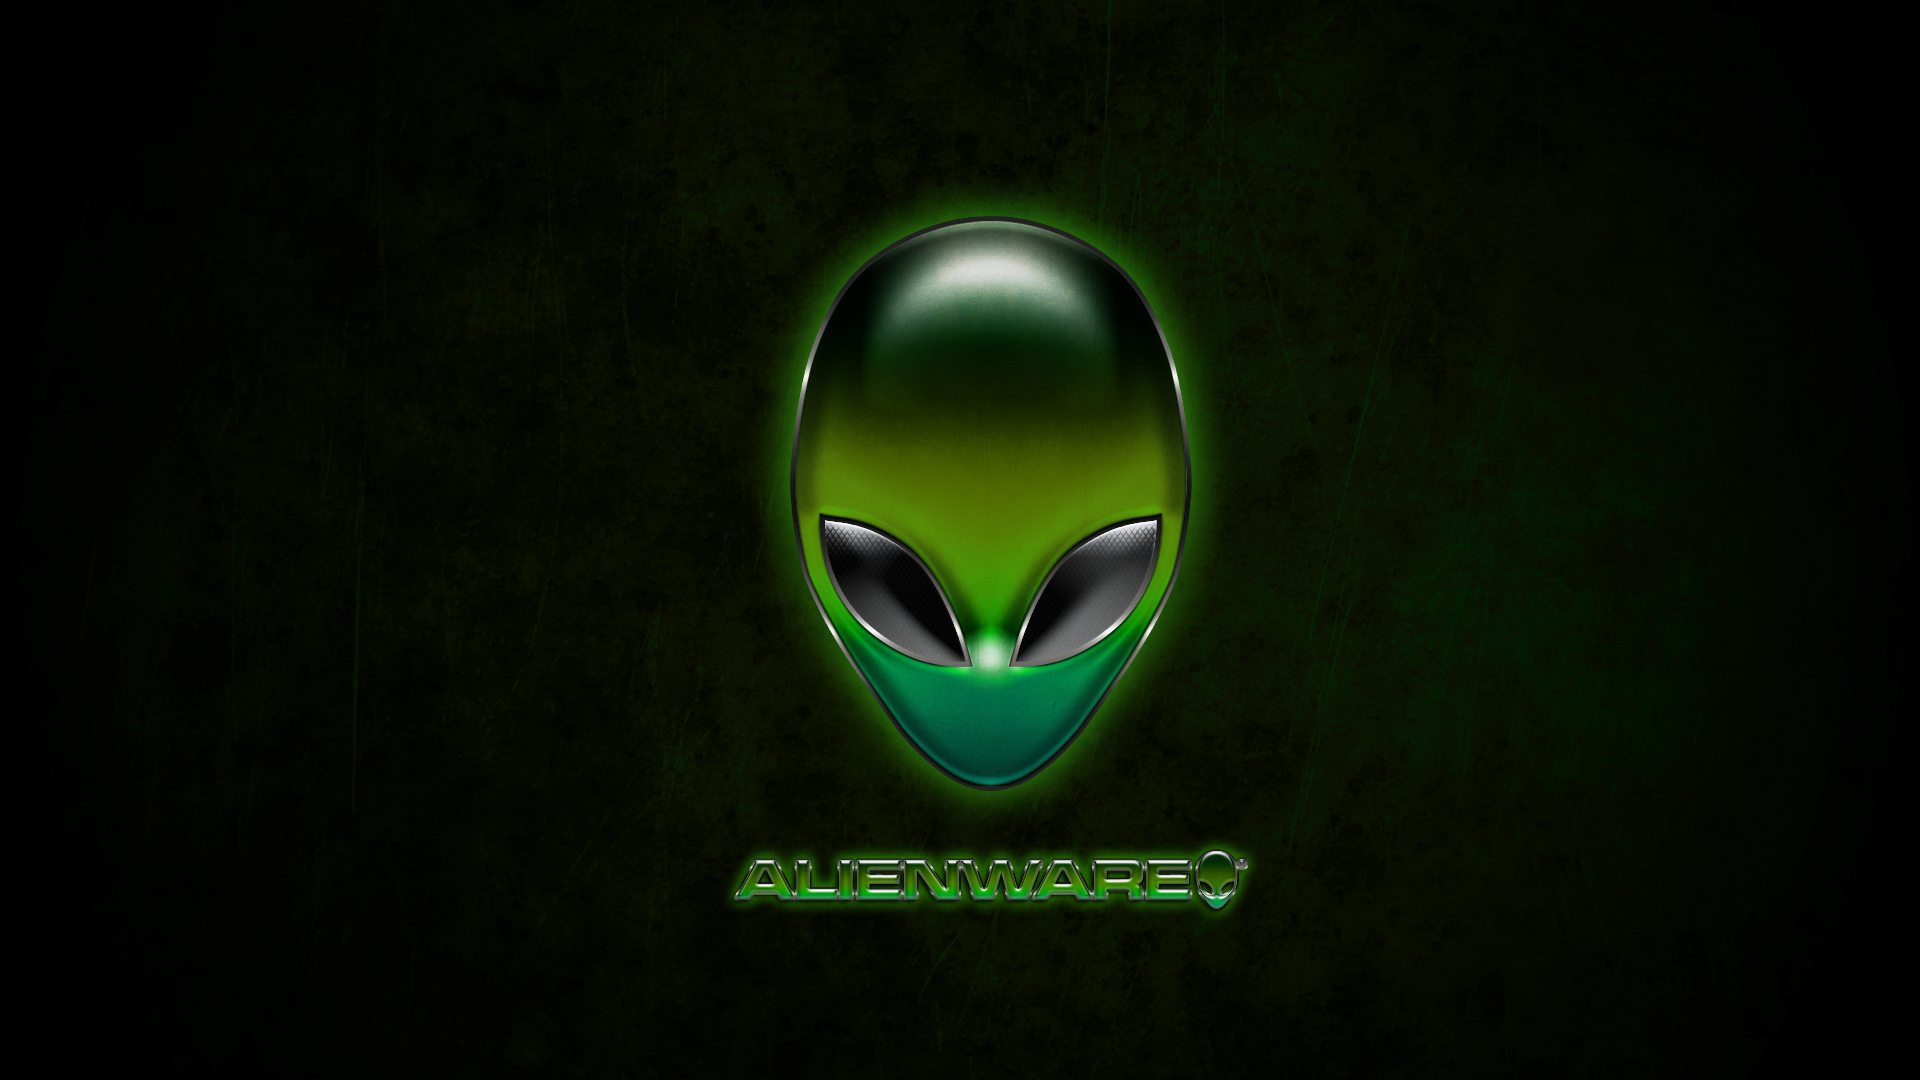 Alienware Green Wallpaper by Dustinsilver 1920x1080